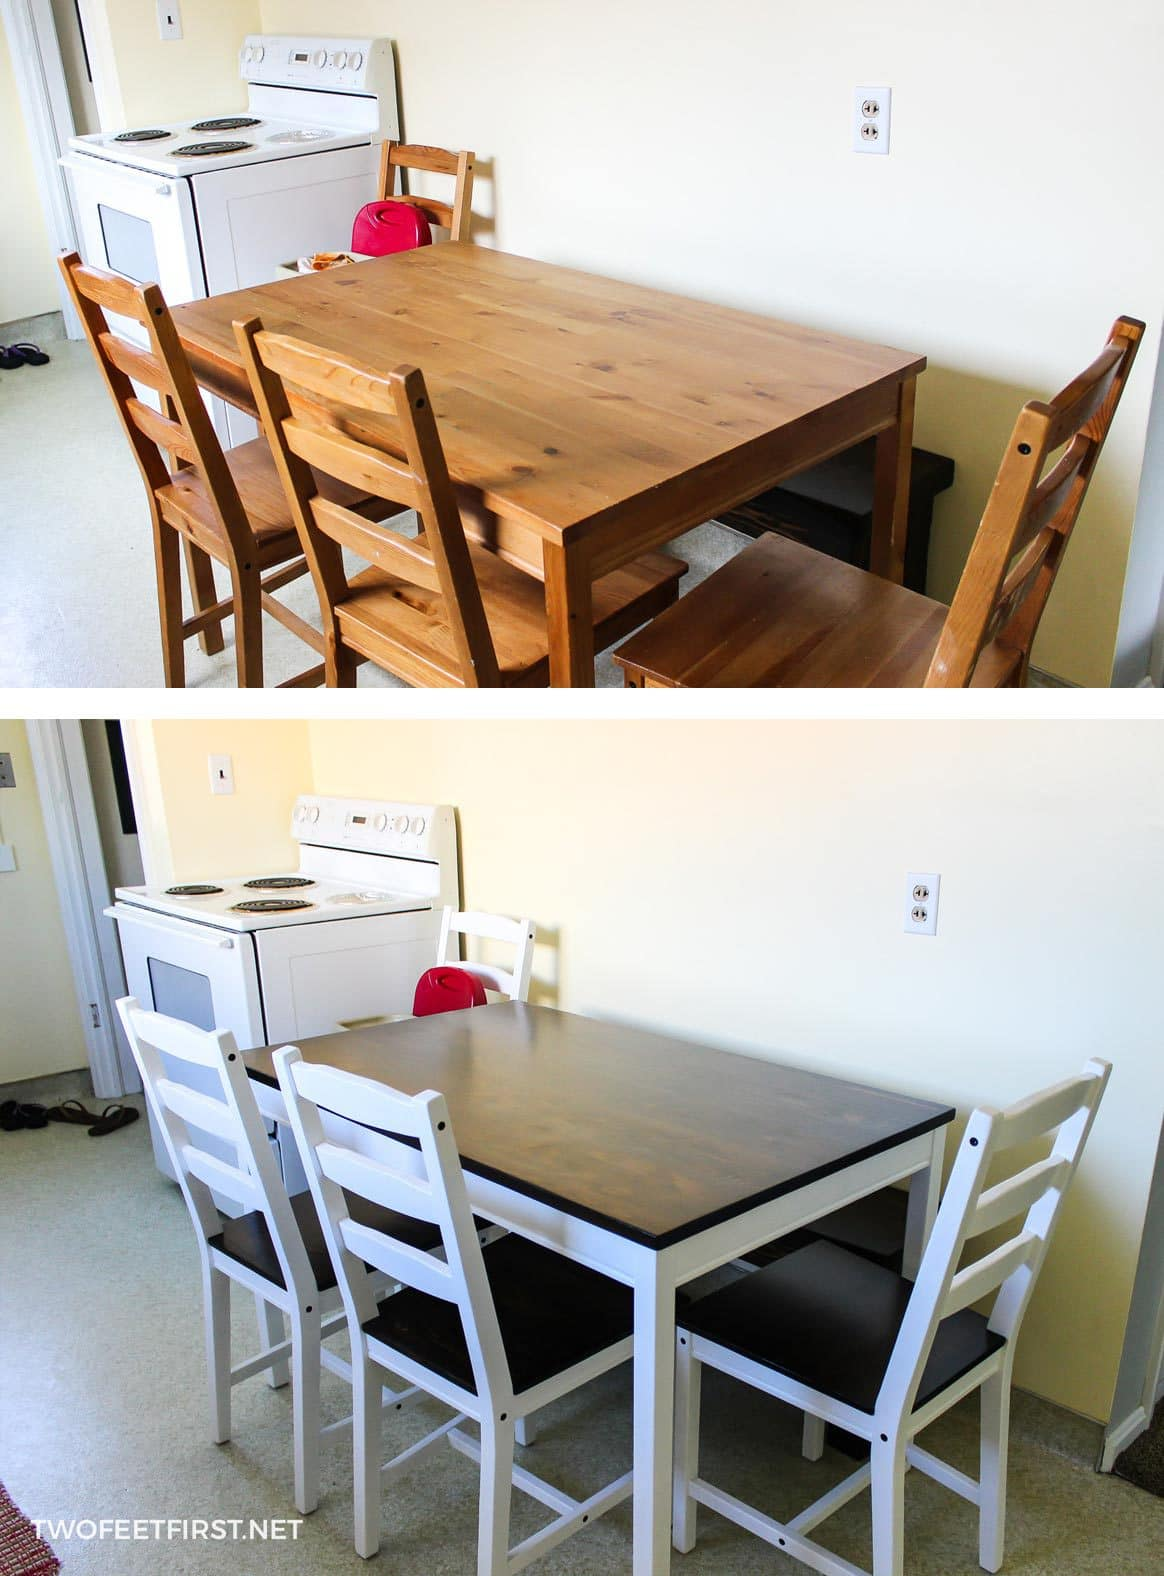 Ikea table hack before and after